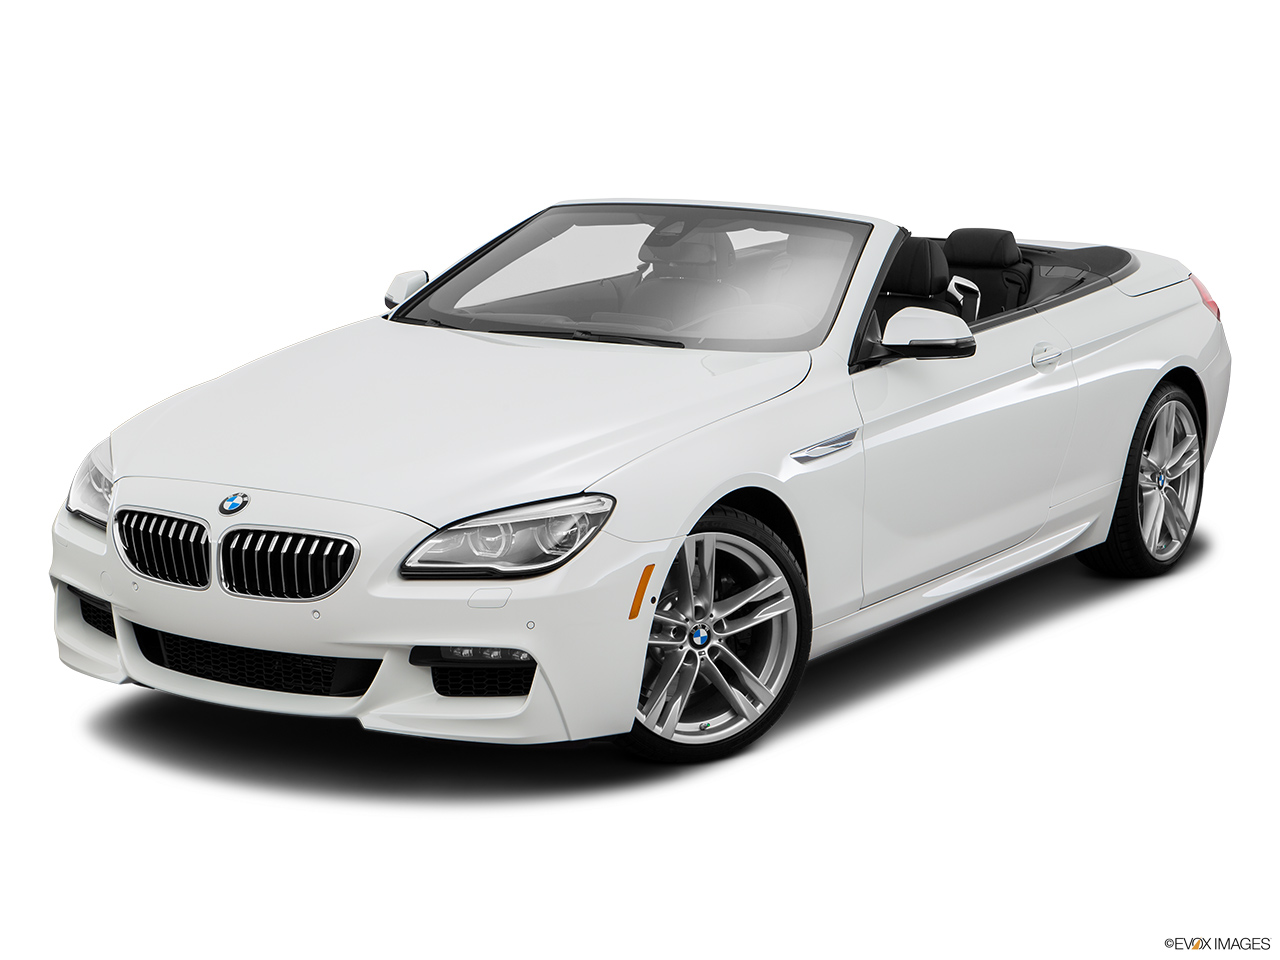 BMW 6 Series Convertible 2016 640i Qatar Front Angle View